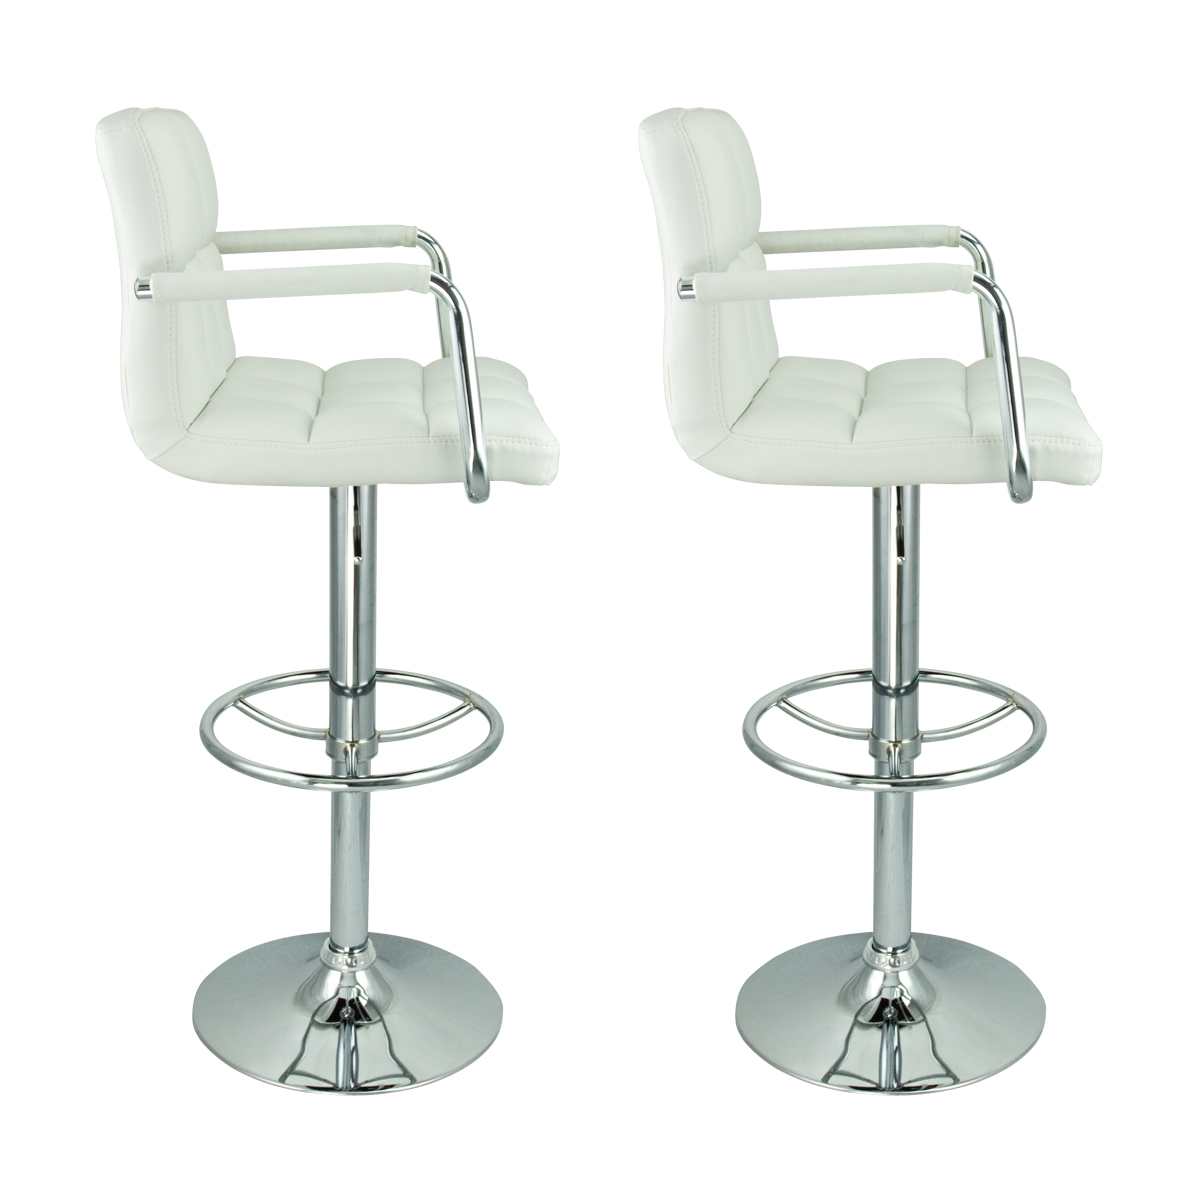 2 Swivel White W Arm Pu Leather Modern Adjustable